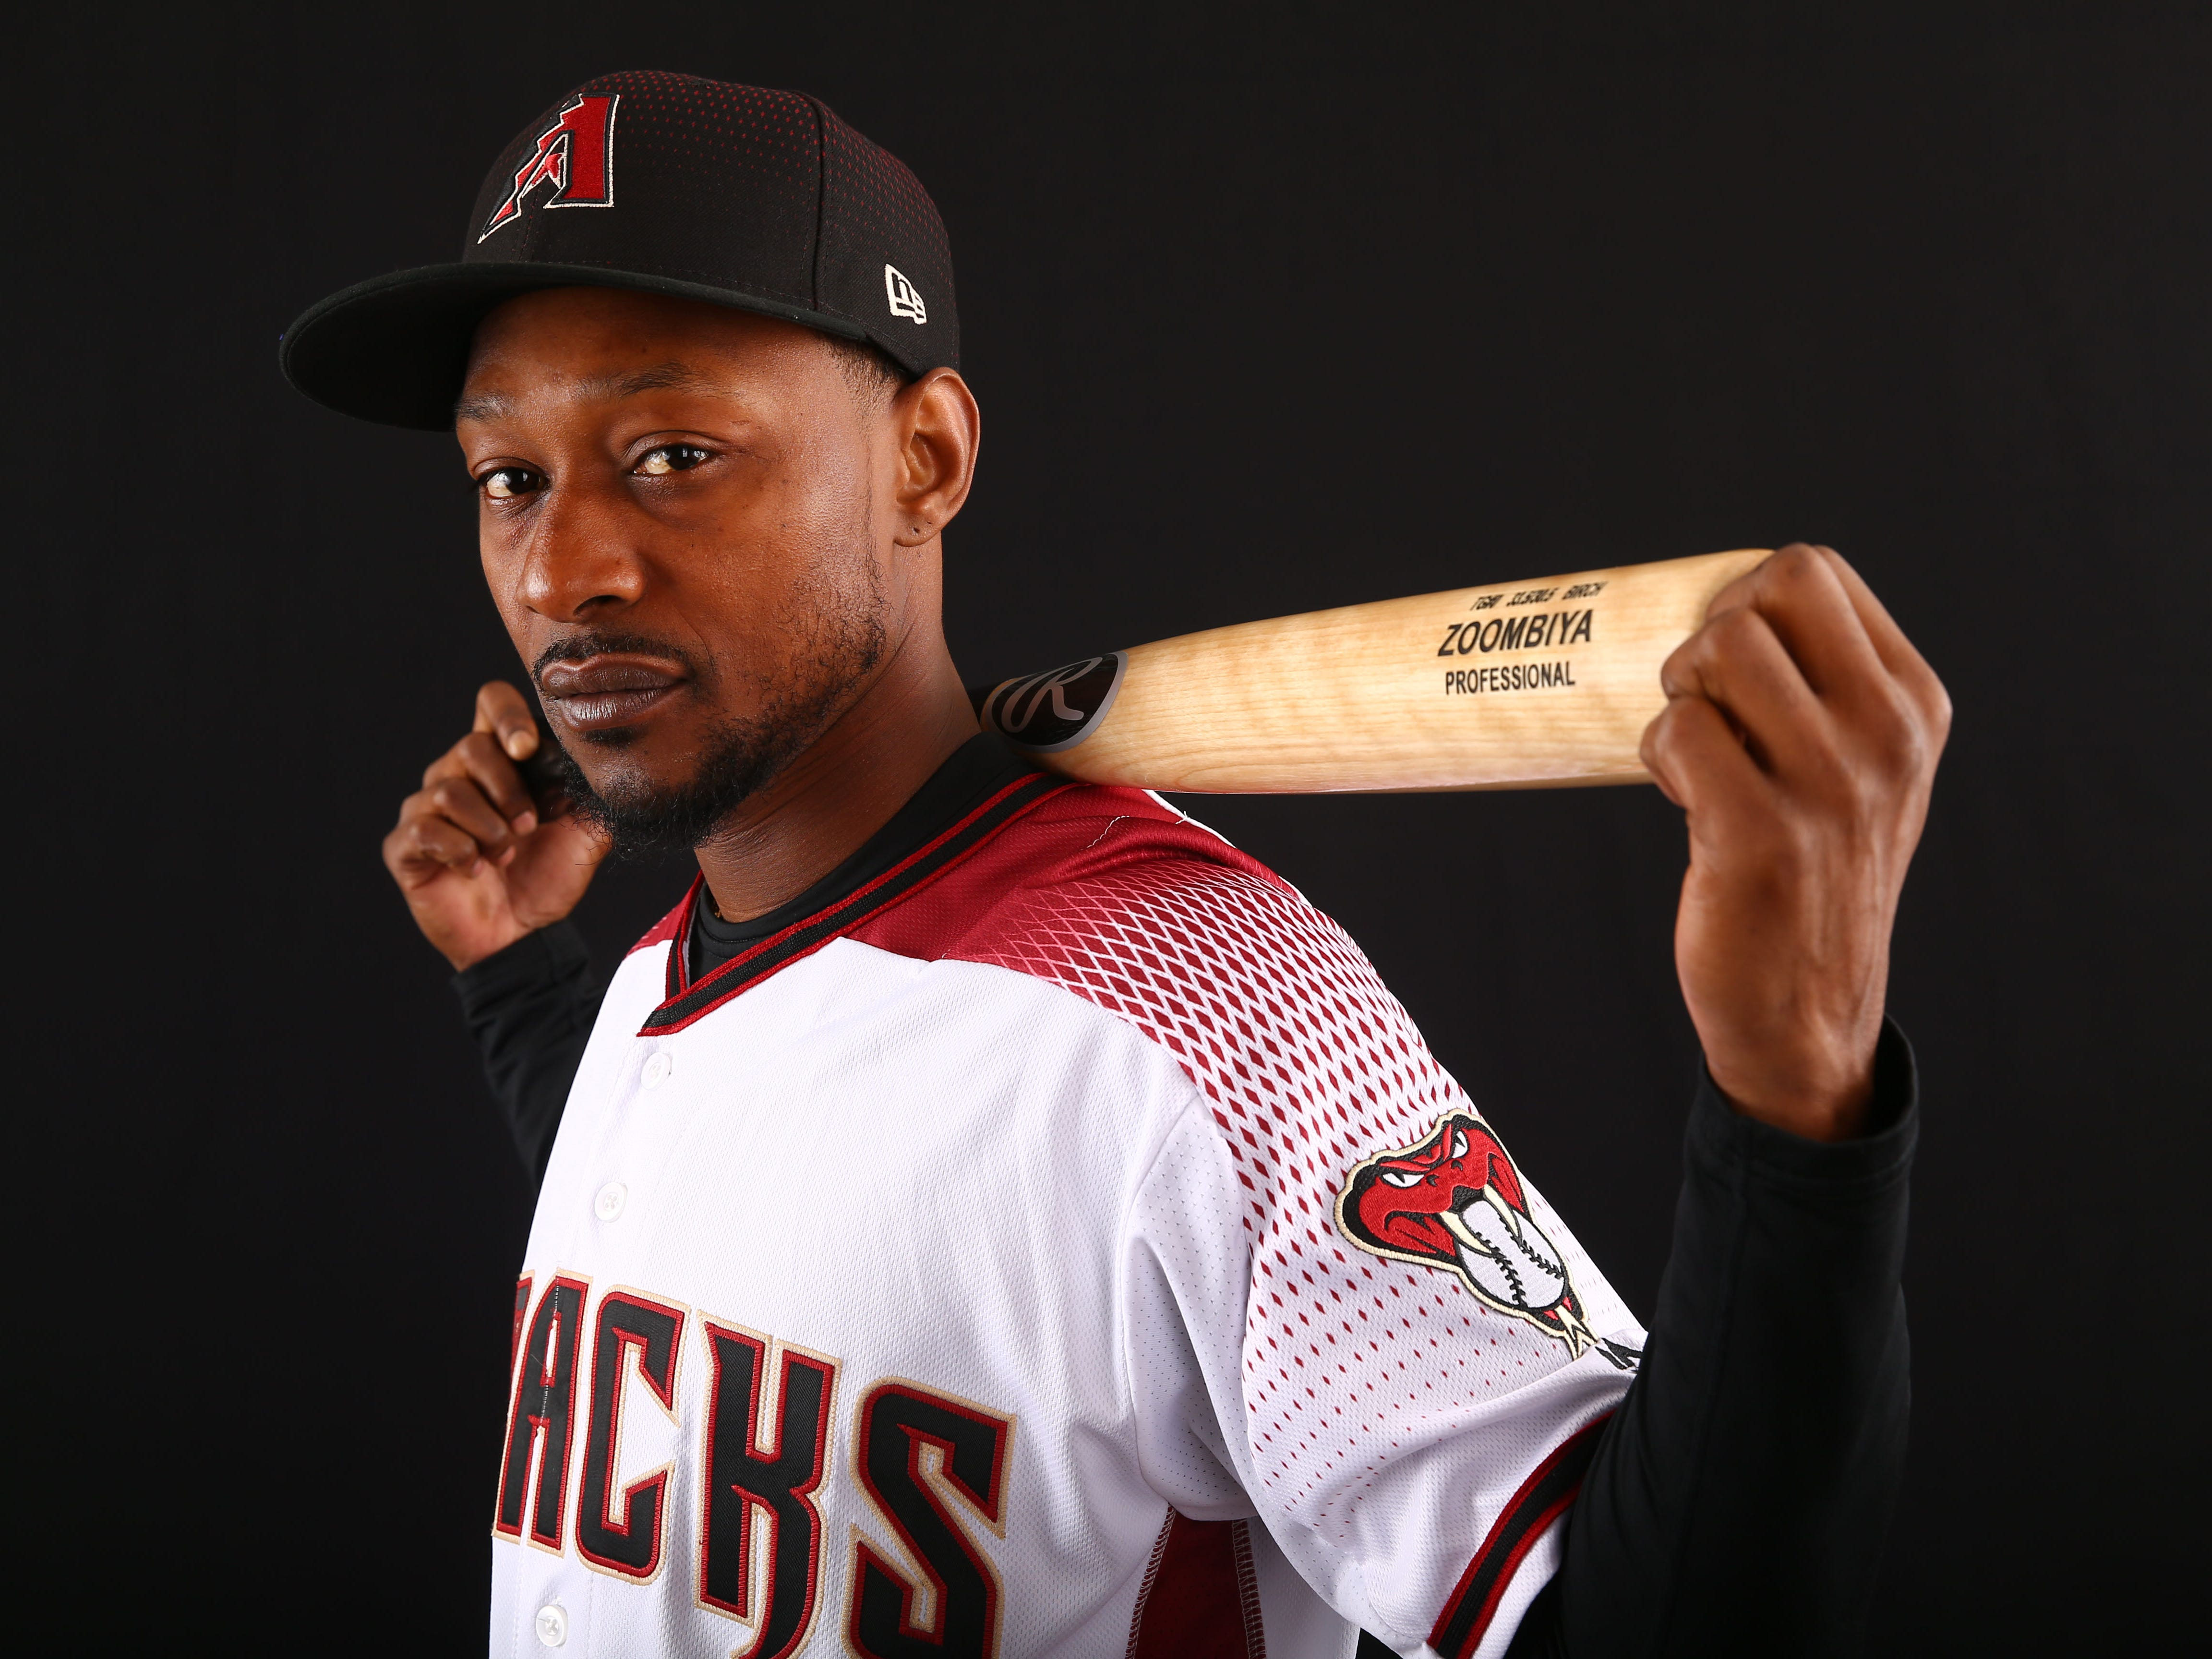 Jarrod Dyson of the Arizona Diamondbacks poses for a photo during the annual Spring Training Photo Day on Feb. 20 at Salt River Fields in Scottsdale, Ariz.